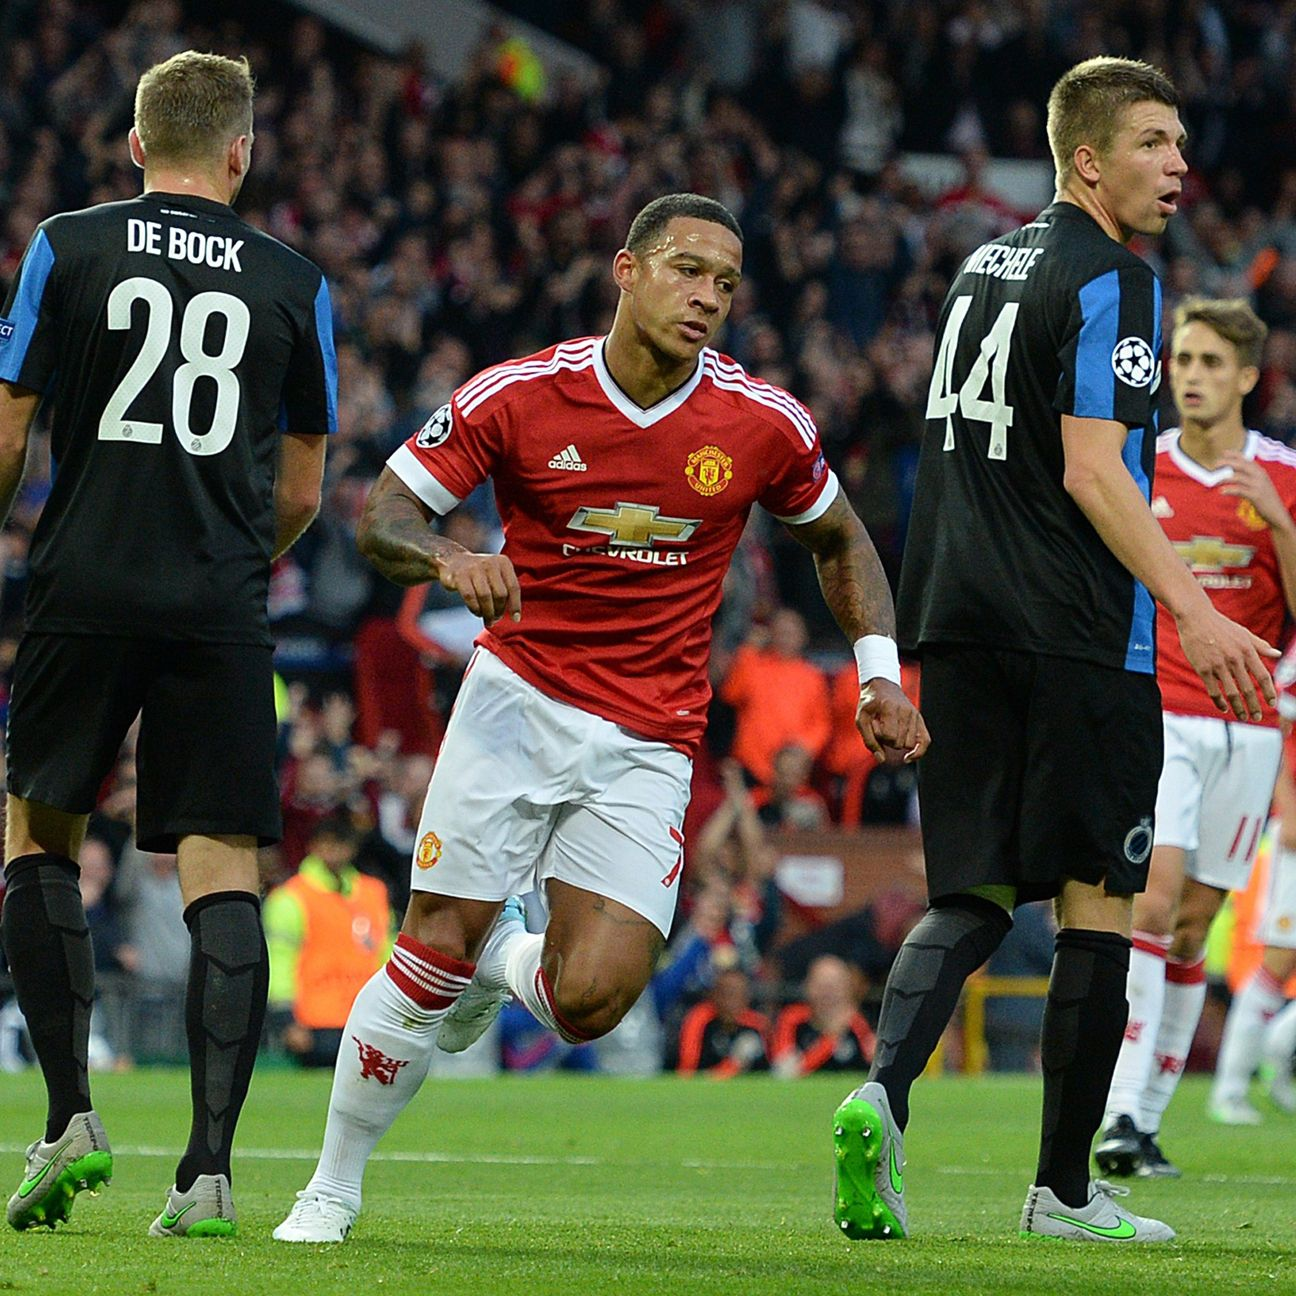 Memphis Depay helped United to a more comfortable cushion heading into next week's return leg.